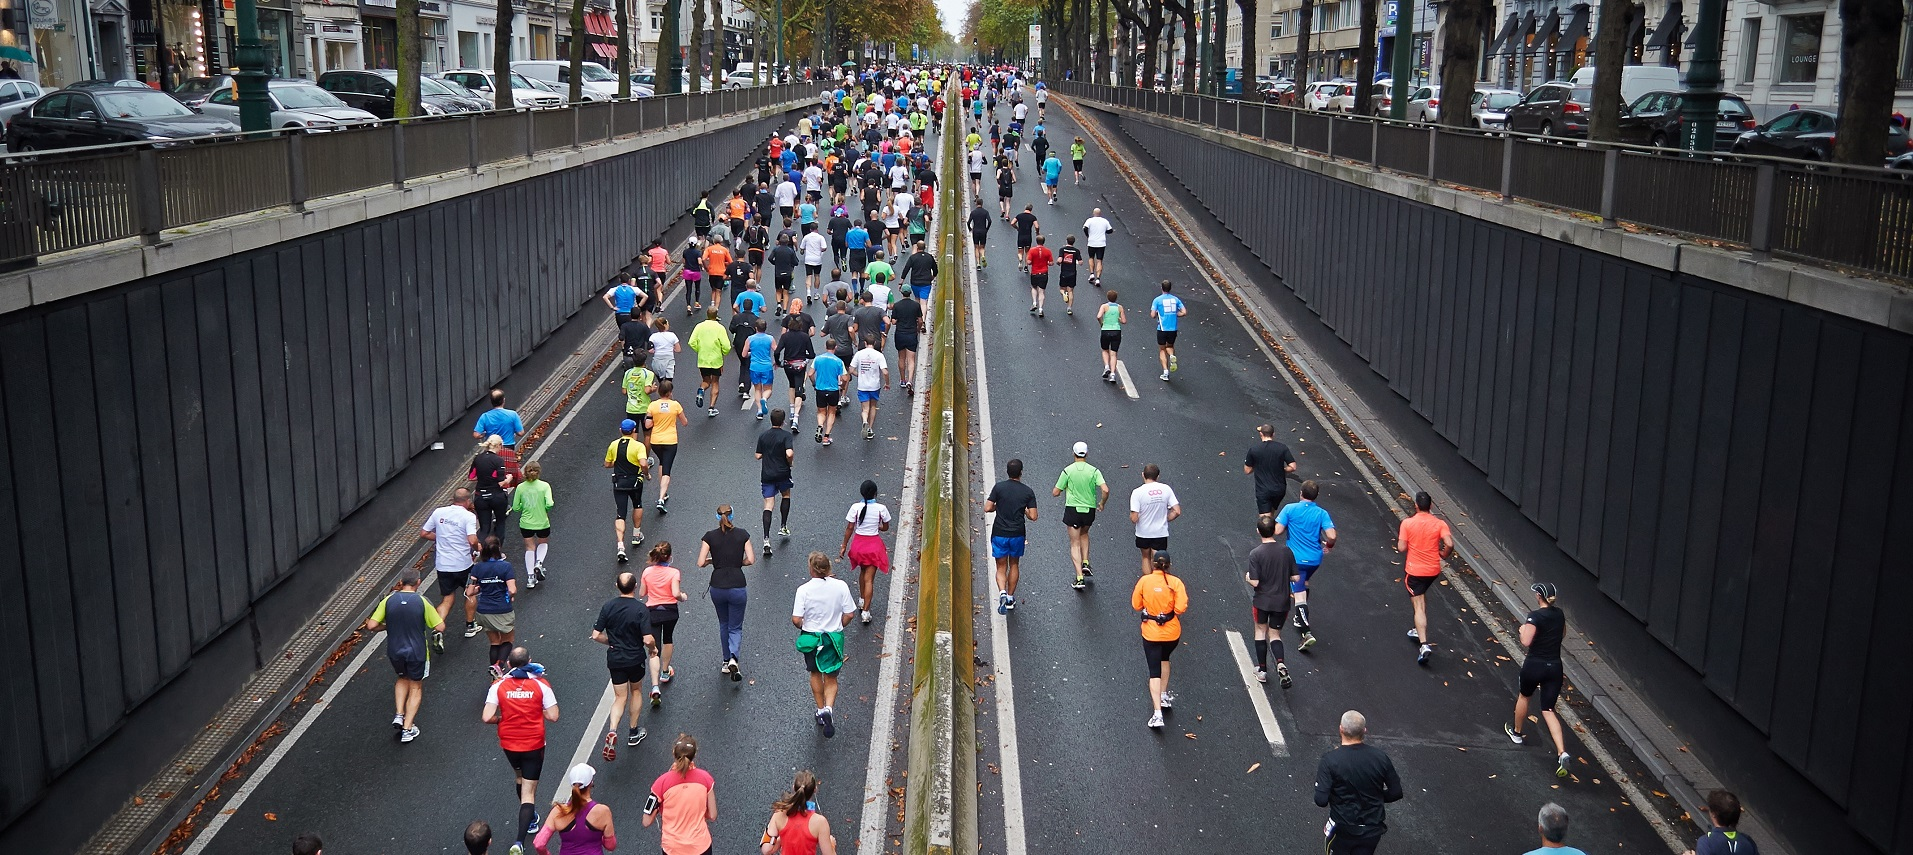 5 Footwear tips for preventing running injuries